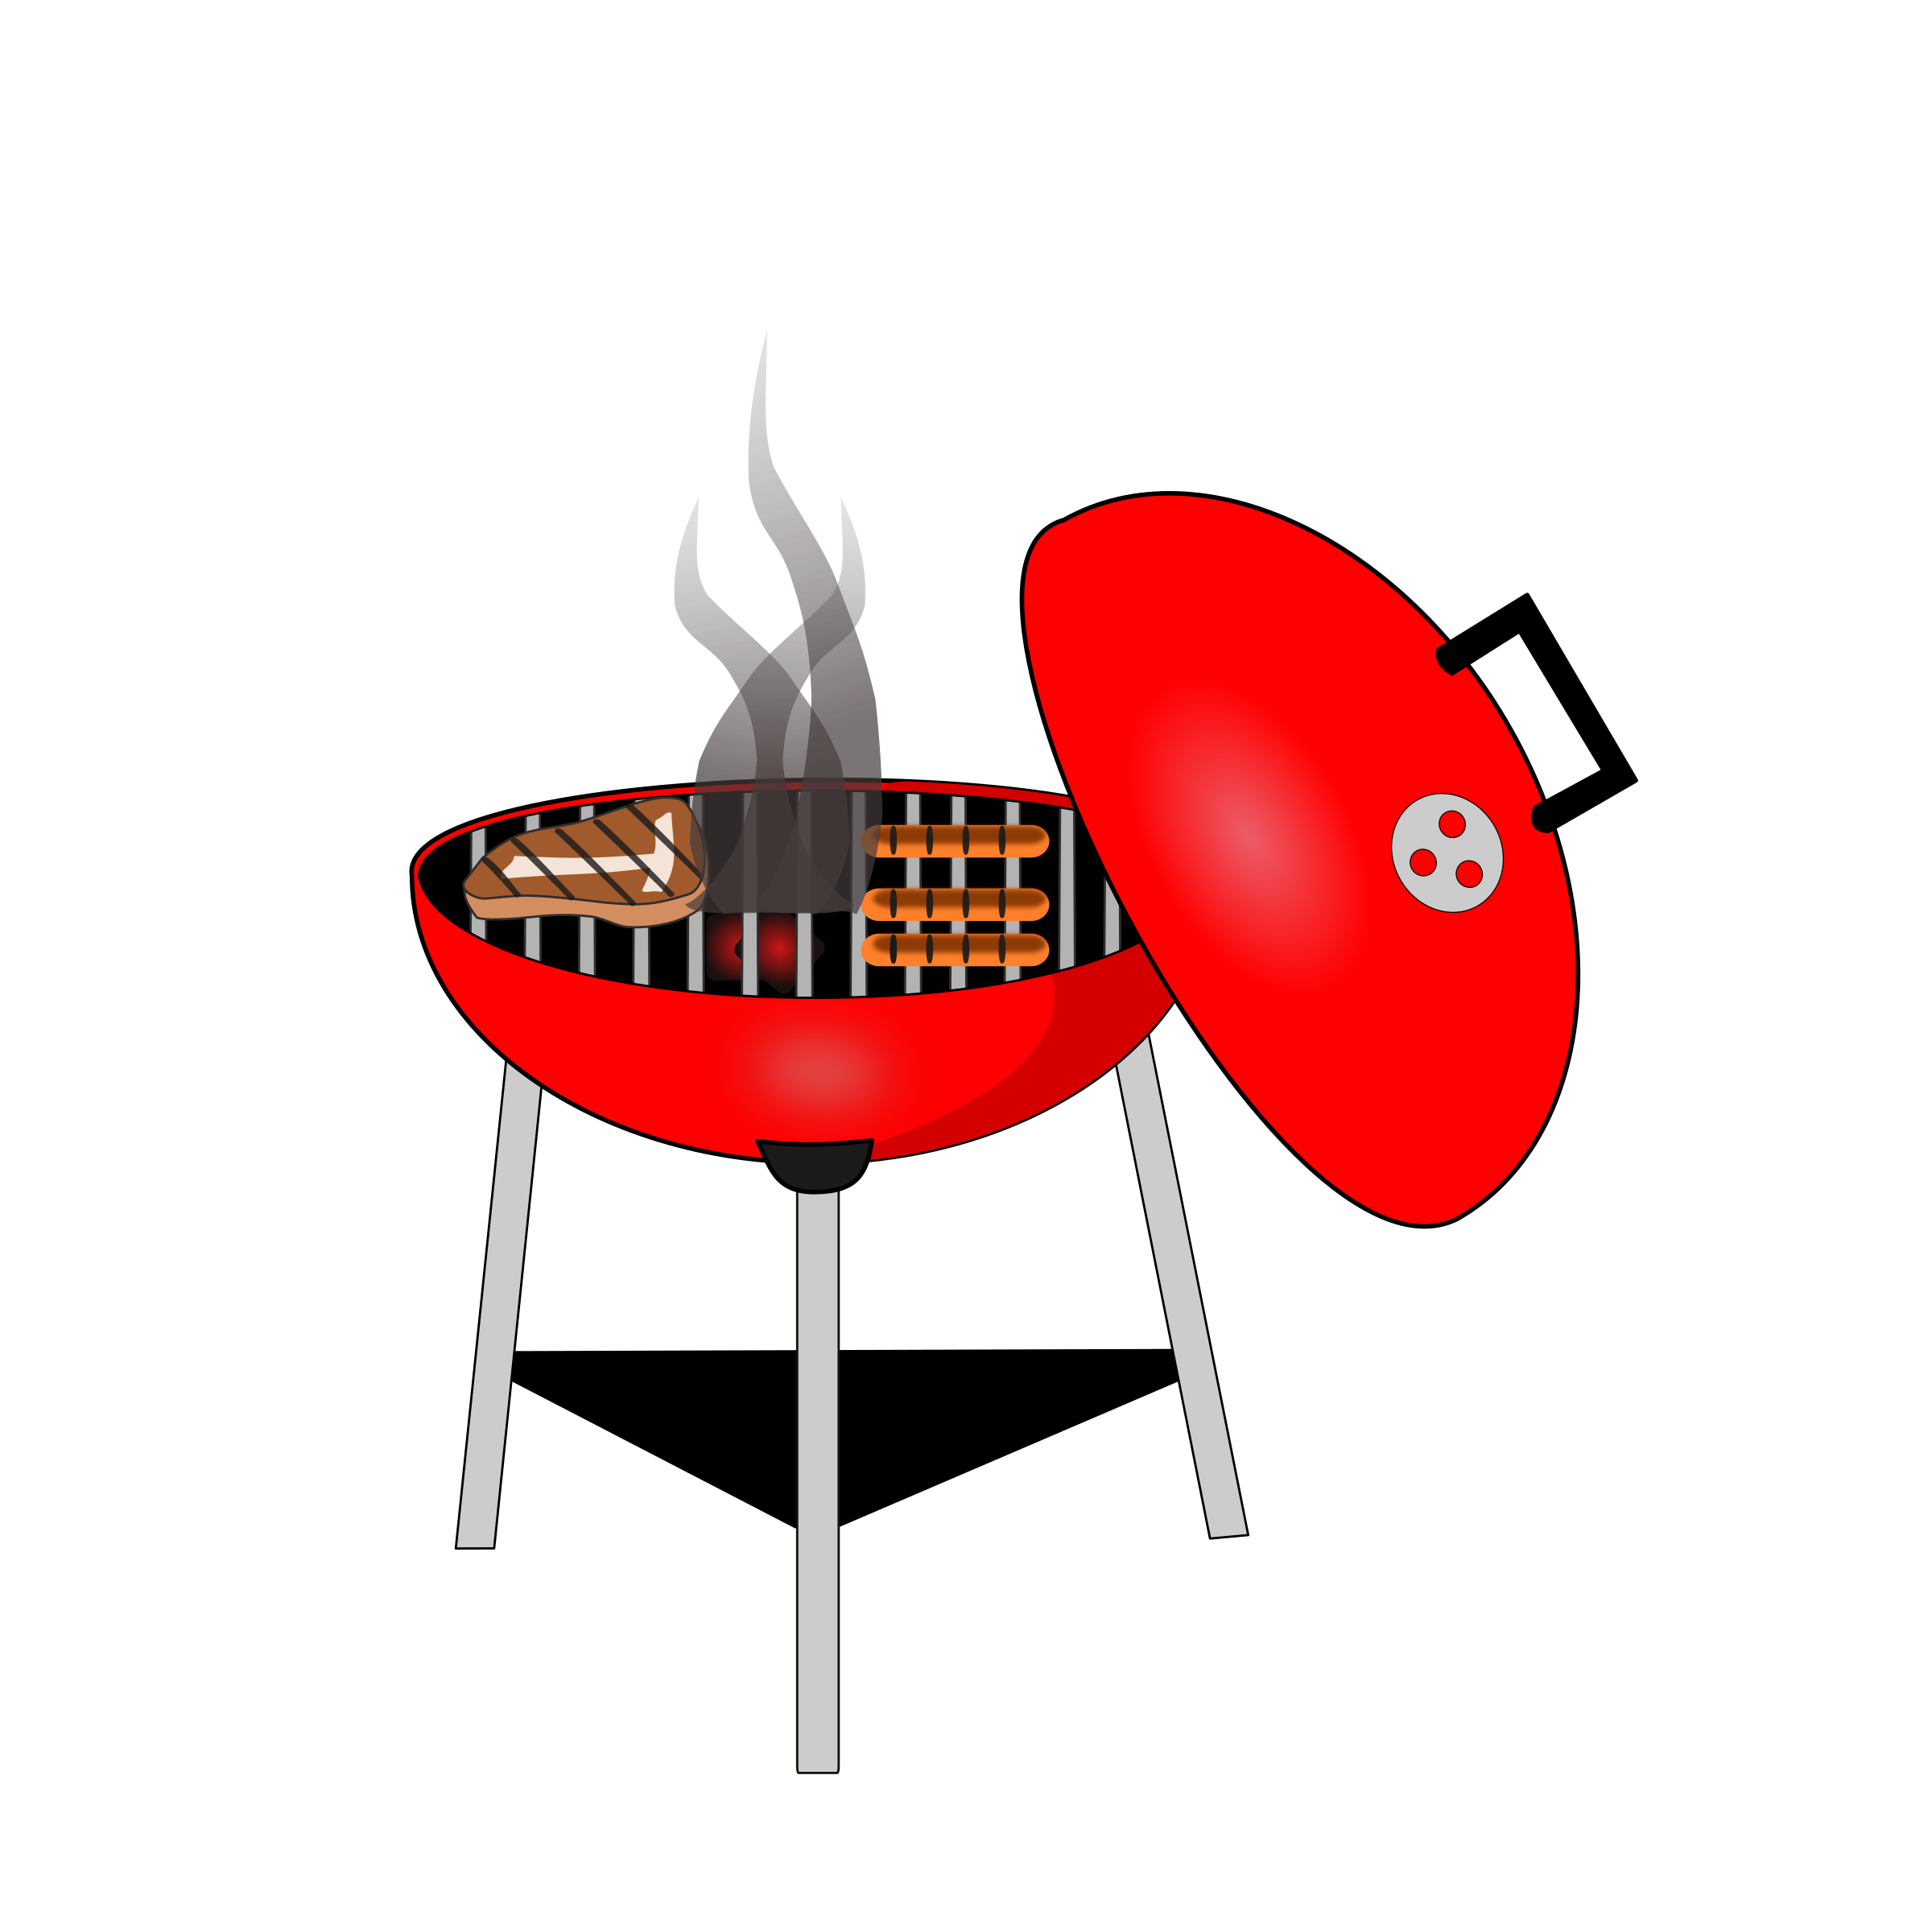 grilling clipart barbecue